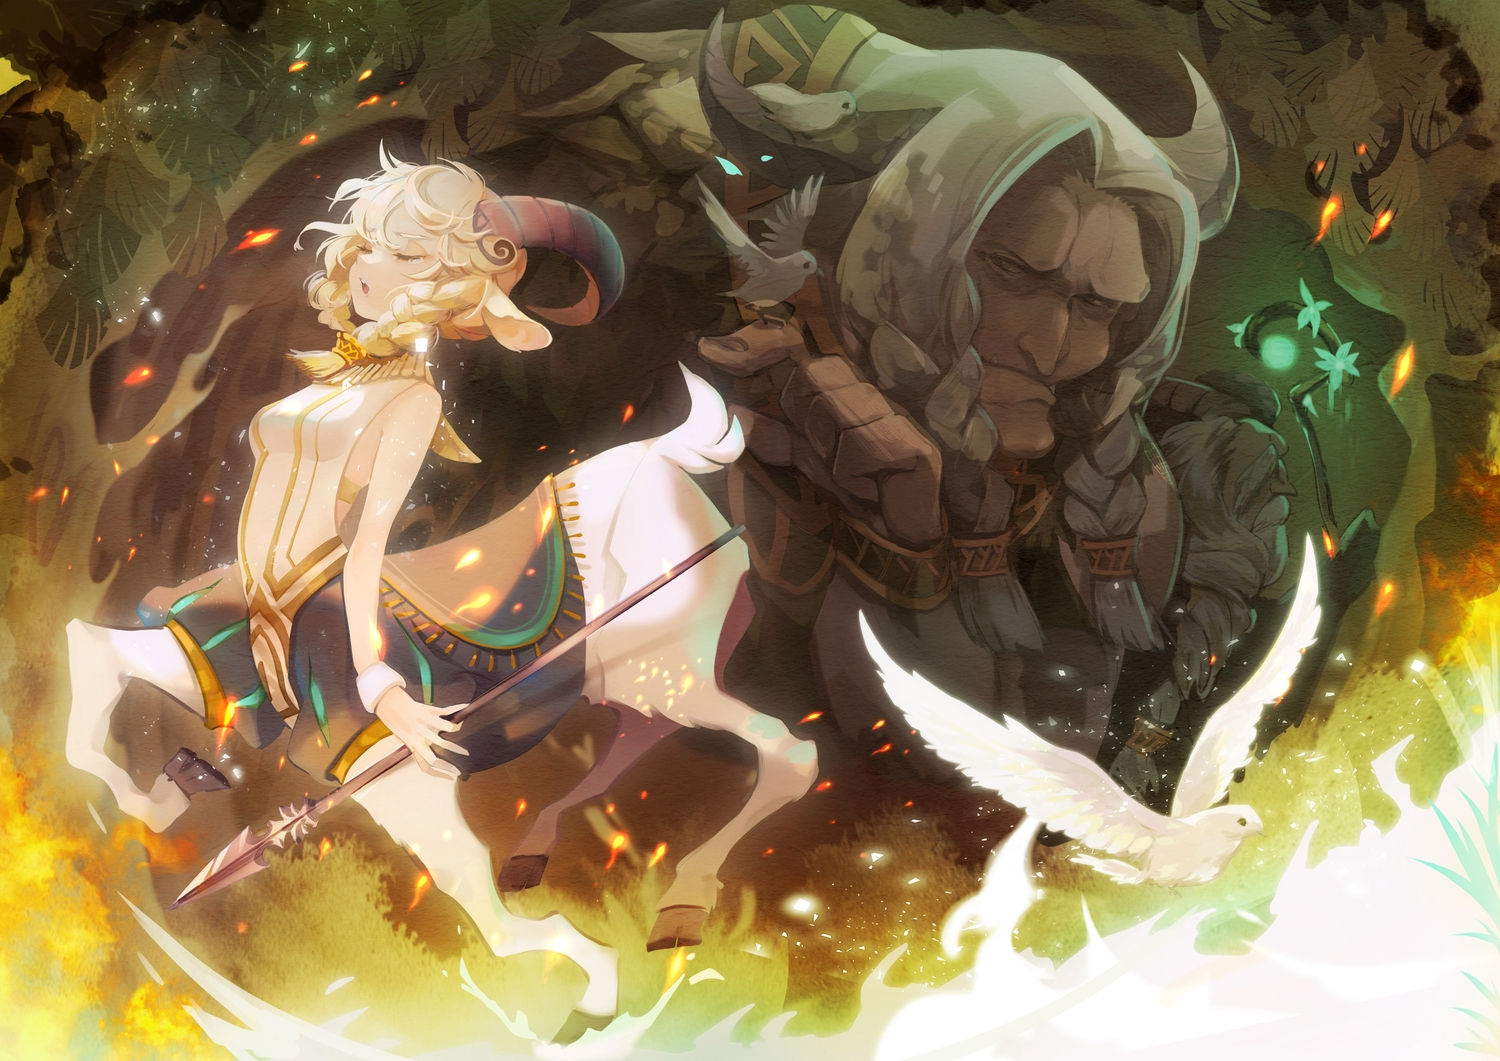 afk_arena animal animal_ears bird blonde_hair dollyly21 horns male nemora_(afk_arena) spear tagme_(character) tears weapon white_hair